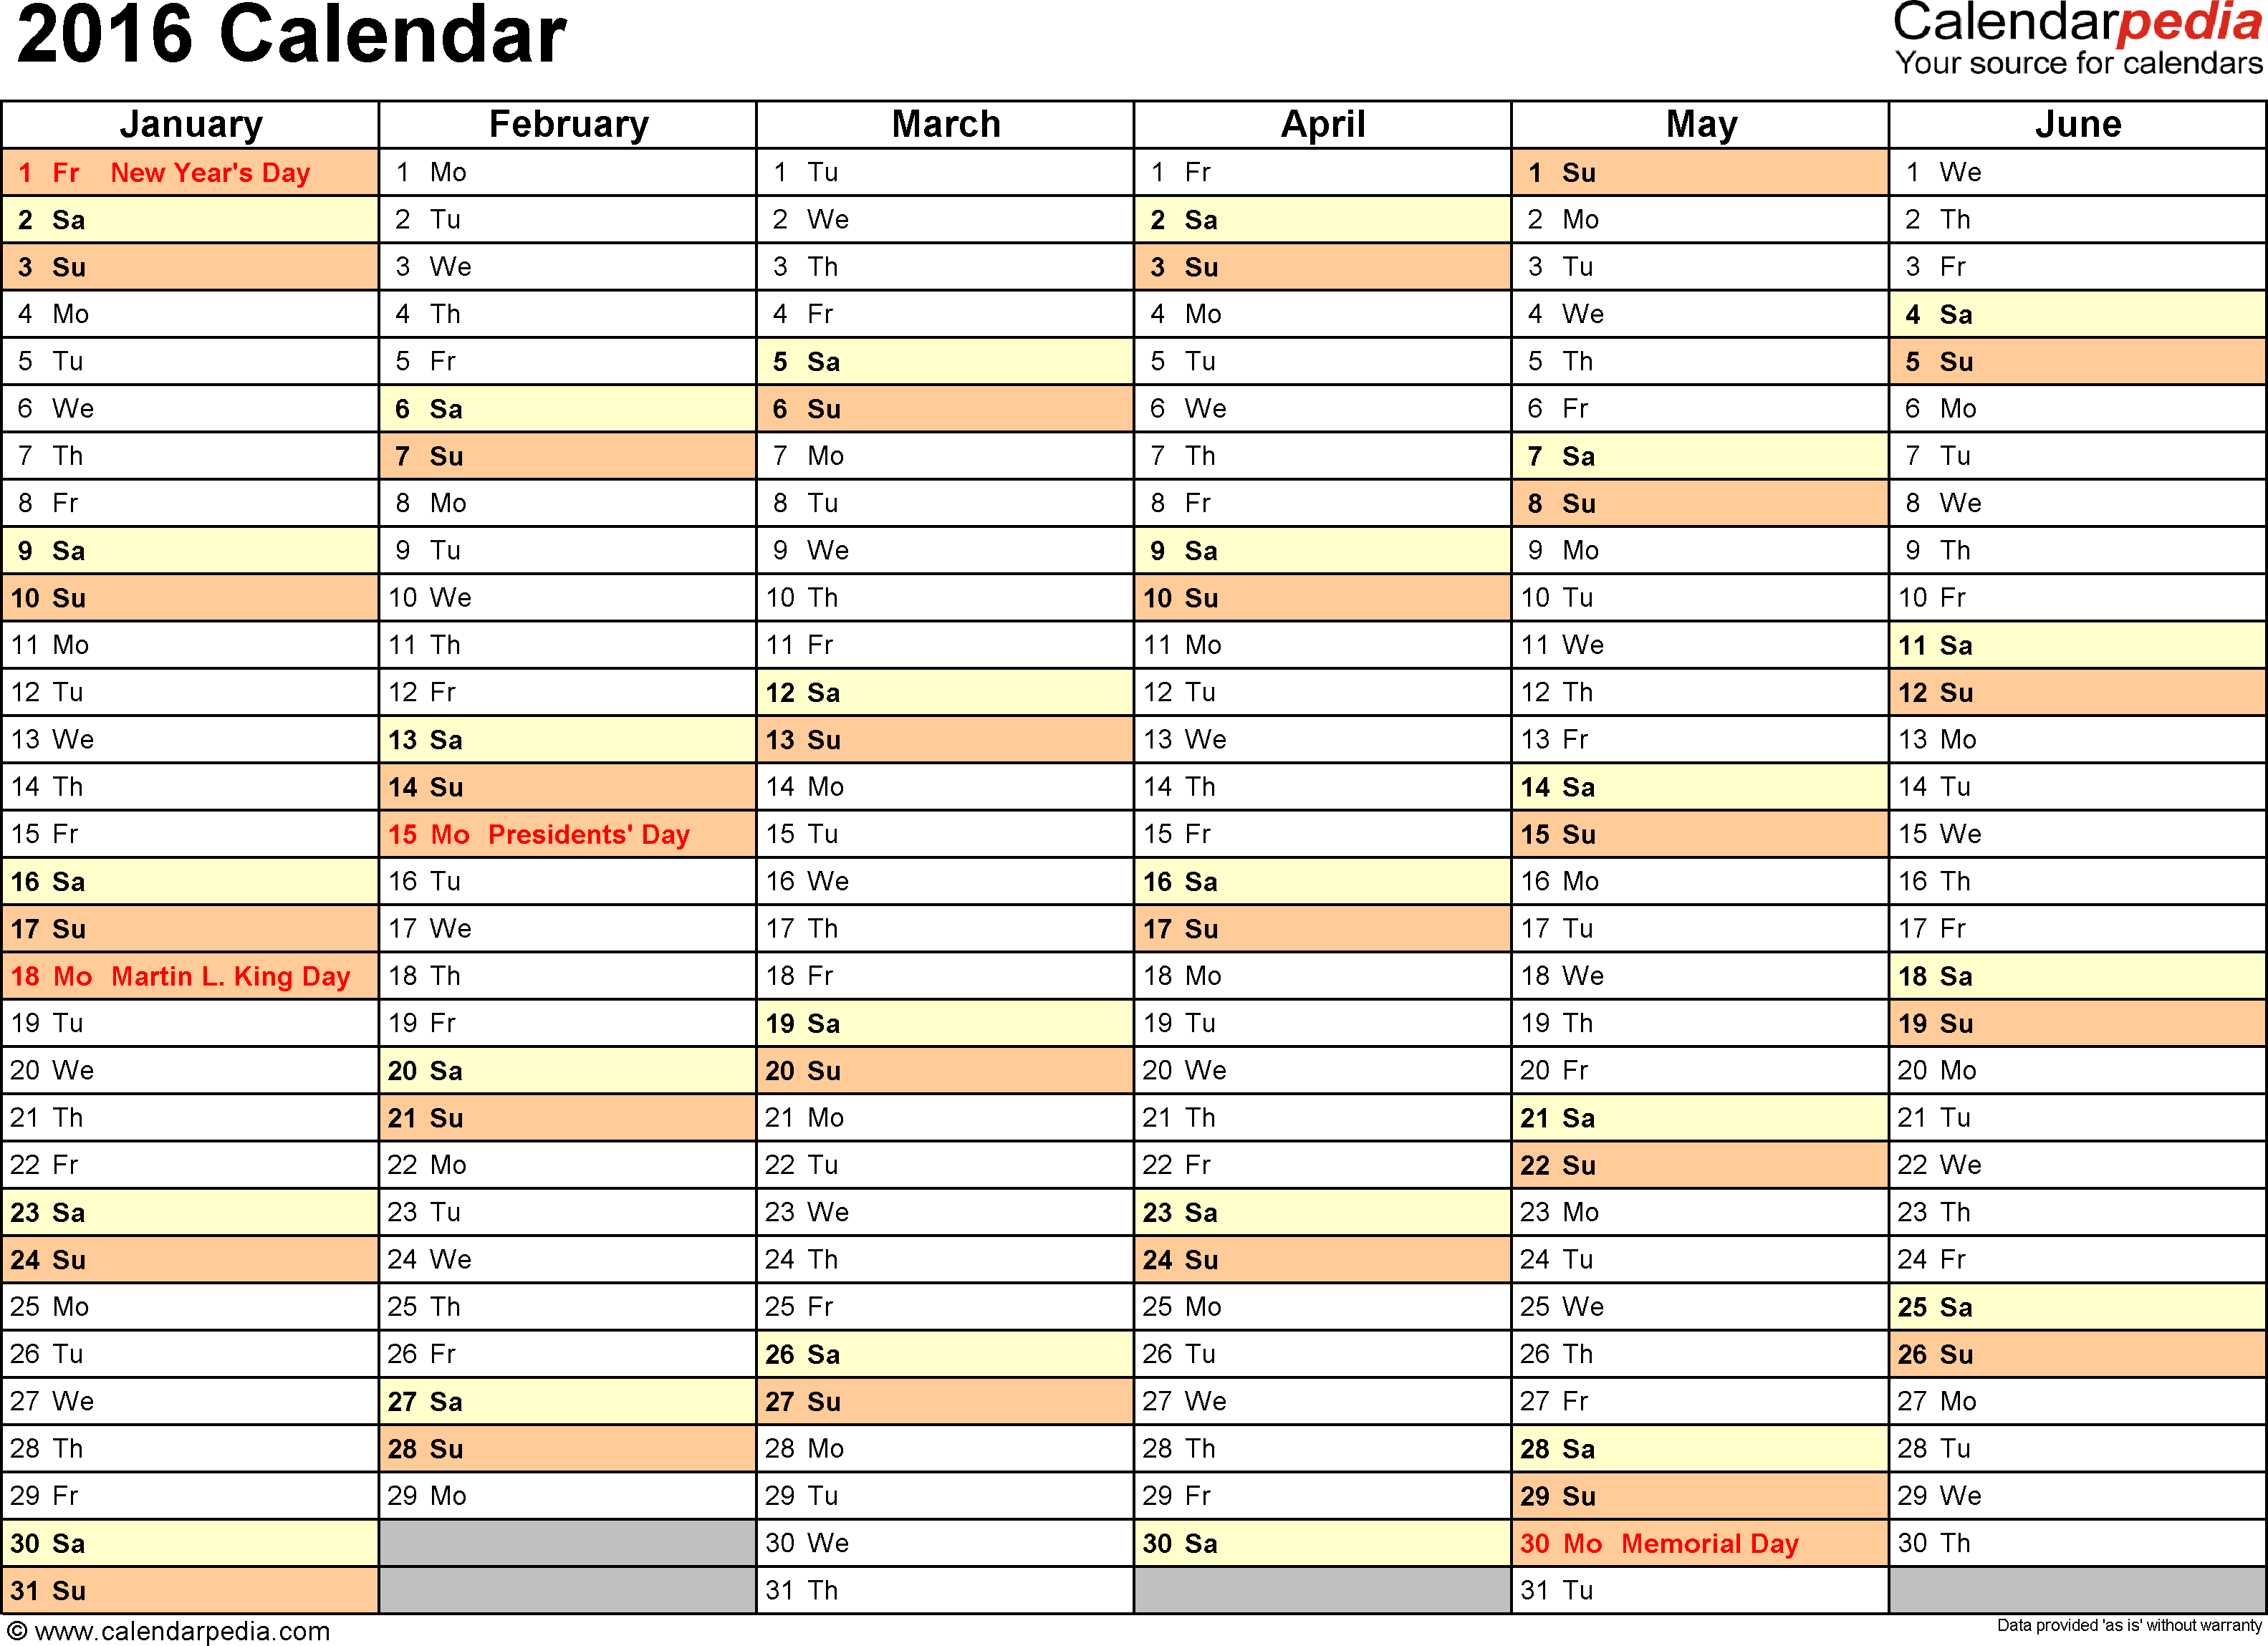 Ediblewildsus  Seductive  Calendar  Download  Free Printable Excel Templates Xls With Inspiring Template   Calendar For Excel Months Horizontally  Pages Landscape Orientation With Beauteous Car Loan Amortization Schedule Excel Also Column Headers In Excel In Addition Balanced Scorecard Excel Template And Microsoft Excel Templates Download As Well As Engineering With Excel Additionally Mortgage Amortization Schedule In Excel From Calendarpediacom With Ediblewildsus  Inspiring  Calendar  Download  Free Printable Excel Templates Xls With Beauteous Template   Calendar For Excel Months Horizontally  Pages Landscape Orientation And Seductive Car Loan Amortization Schedule Excel Also Column Headers In Excel In Addition Balanced Scorecard Excel Template From Calendarpediacom